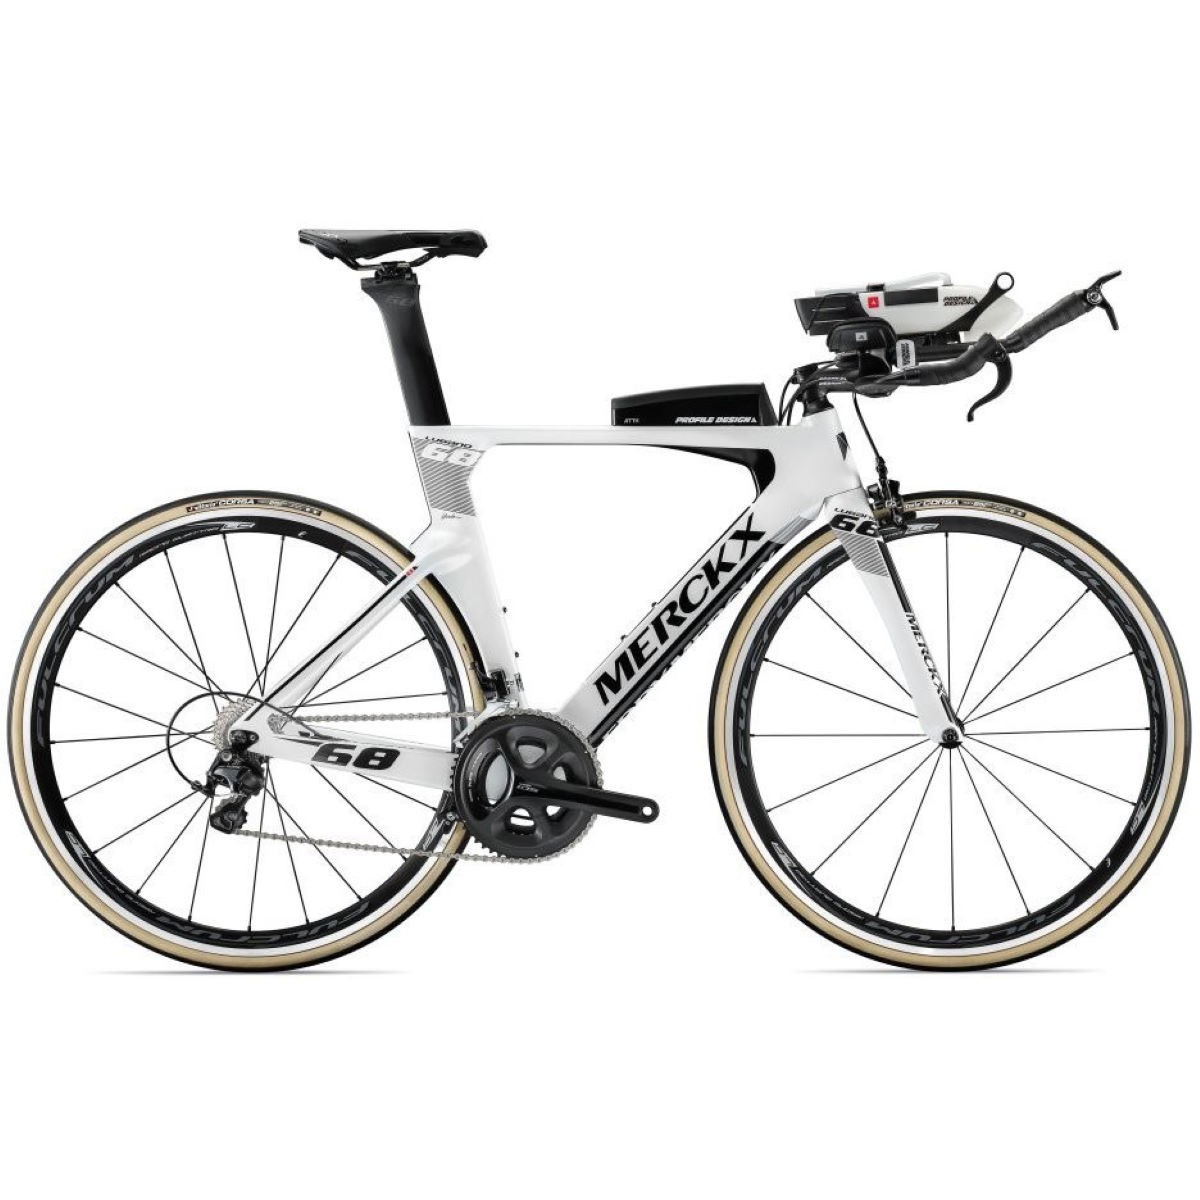 Vélo de contre-la-montre Eddy Merckx Lugano 68 (105, 2018) - XL Stock Bike White/Black/Anthraci Vélos de contre-la-montre